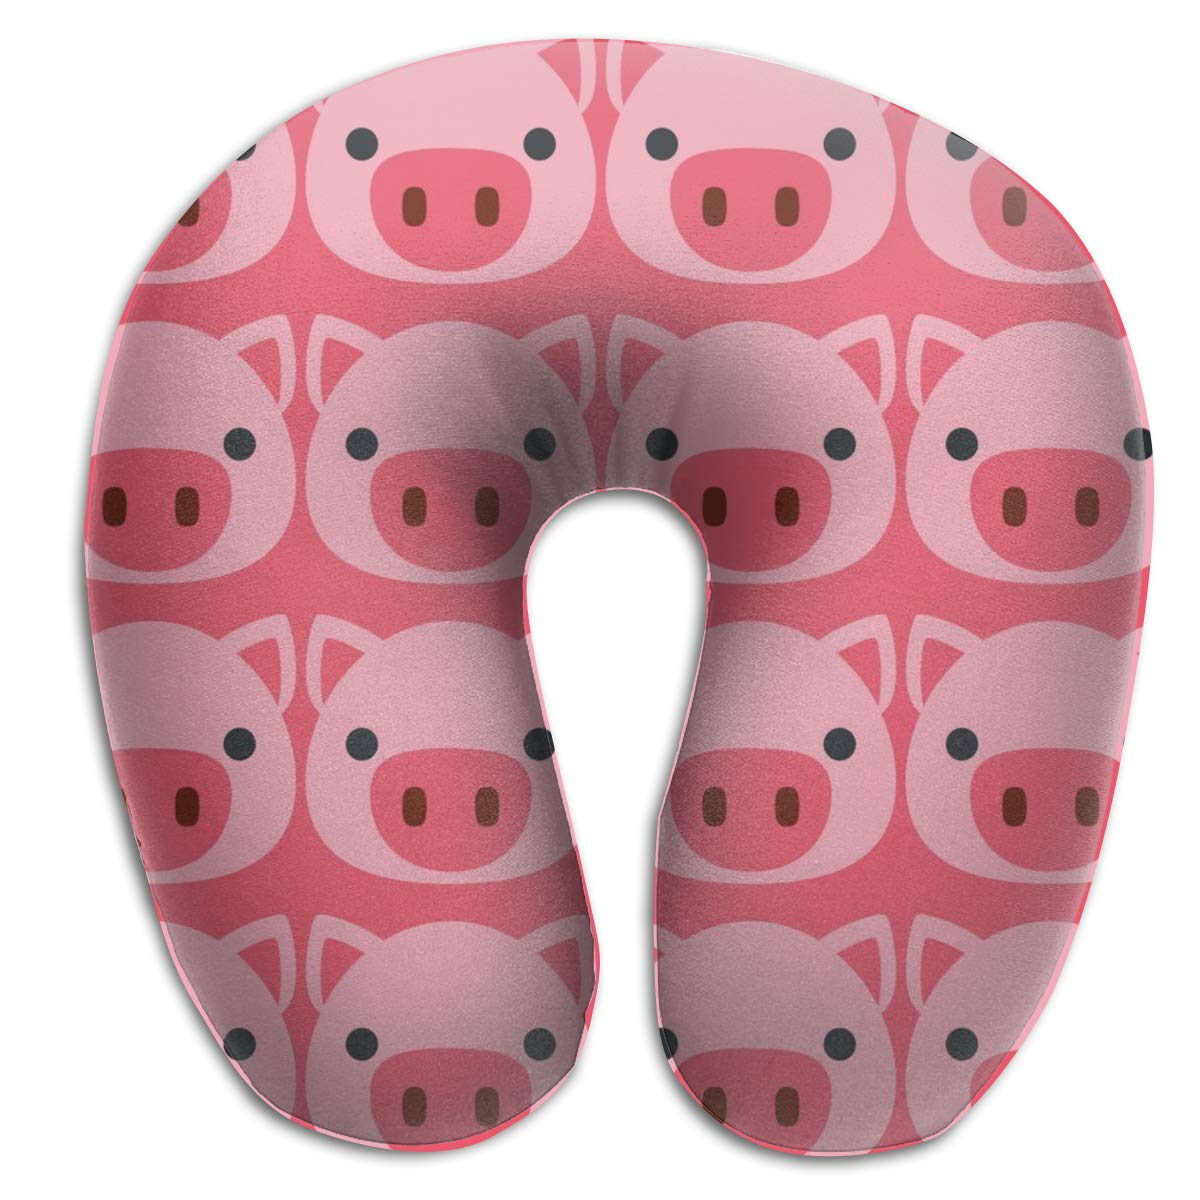 Amazon.com: XUJ YOGA Ideal Gift Pig Face Vintage Memory Foam ...